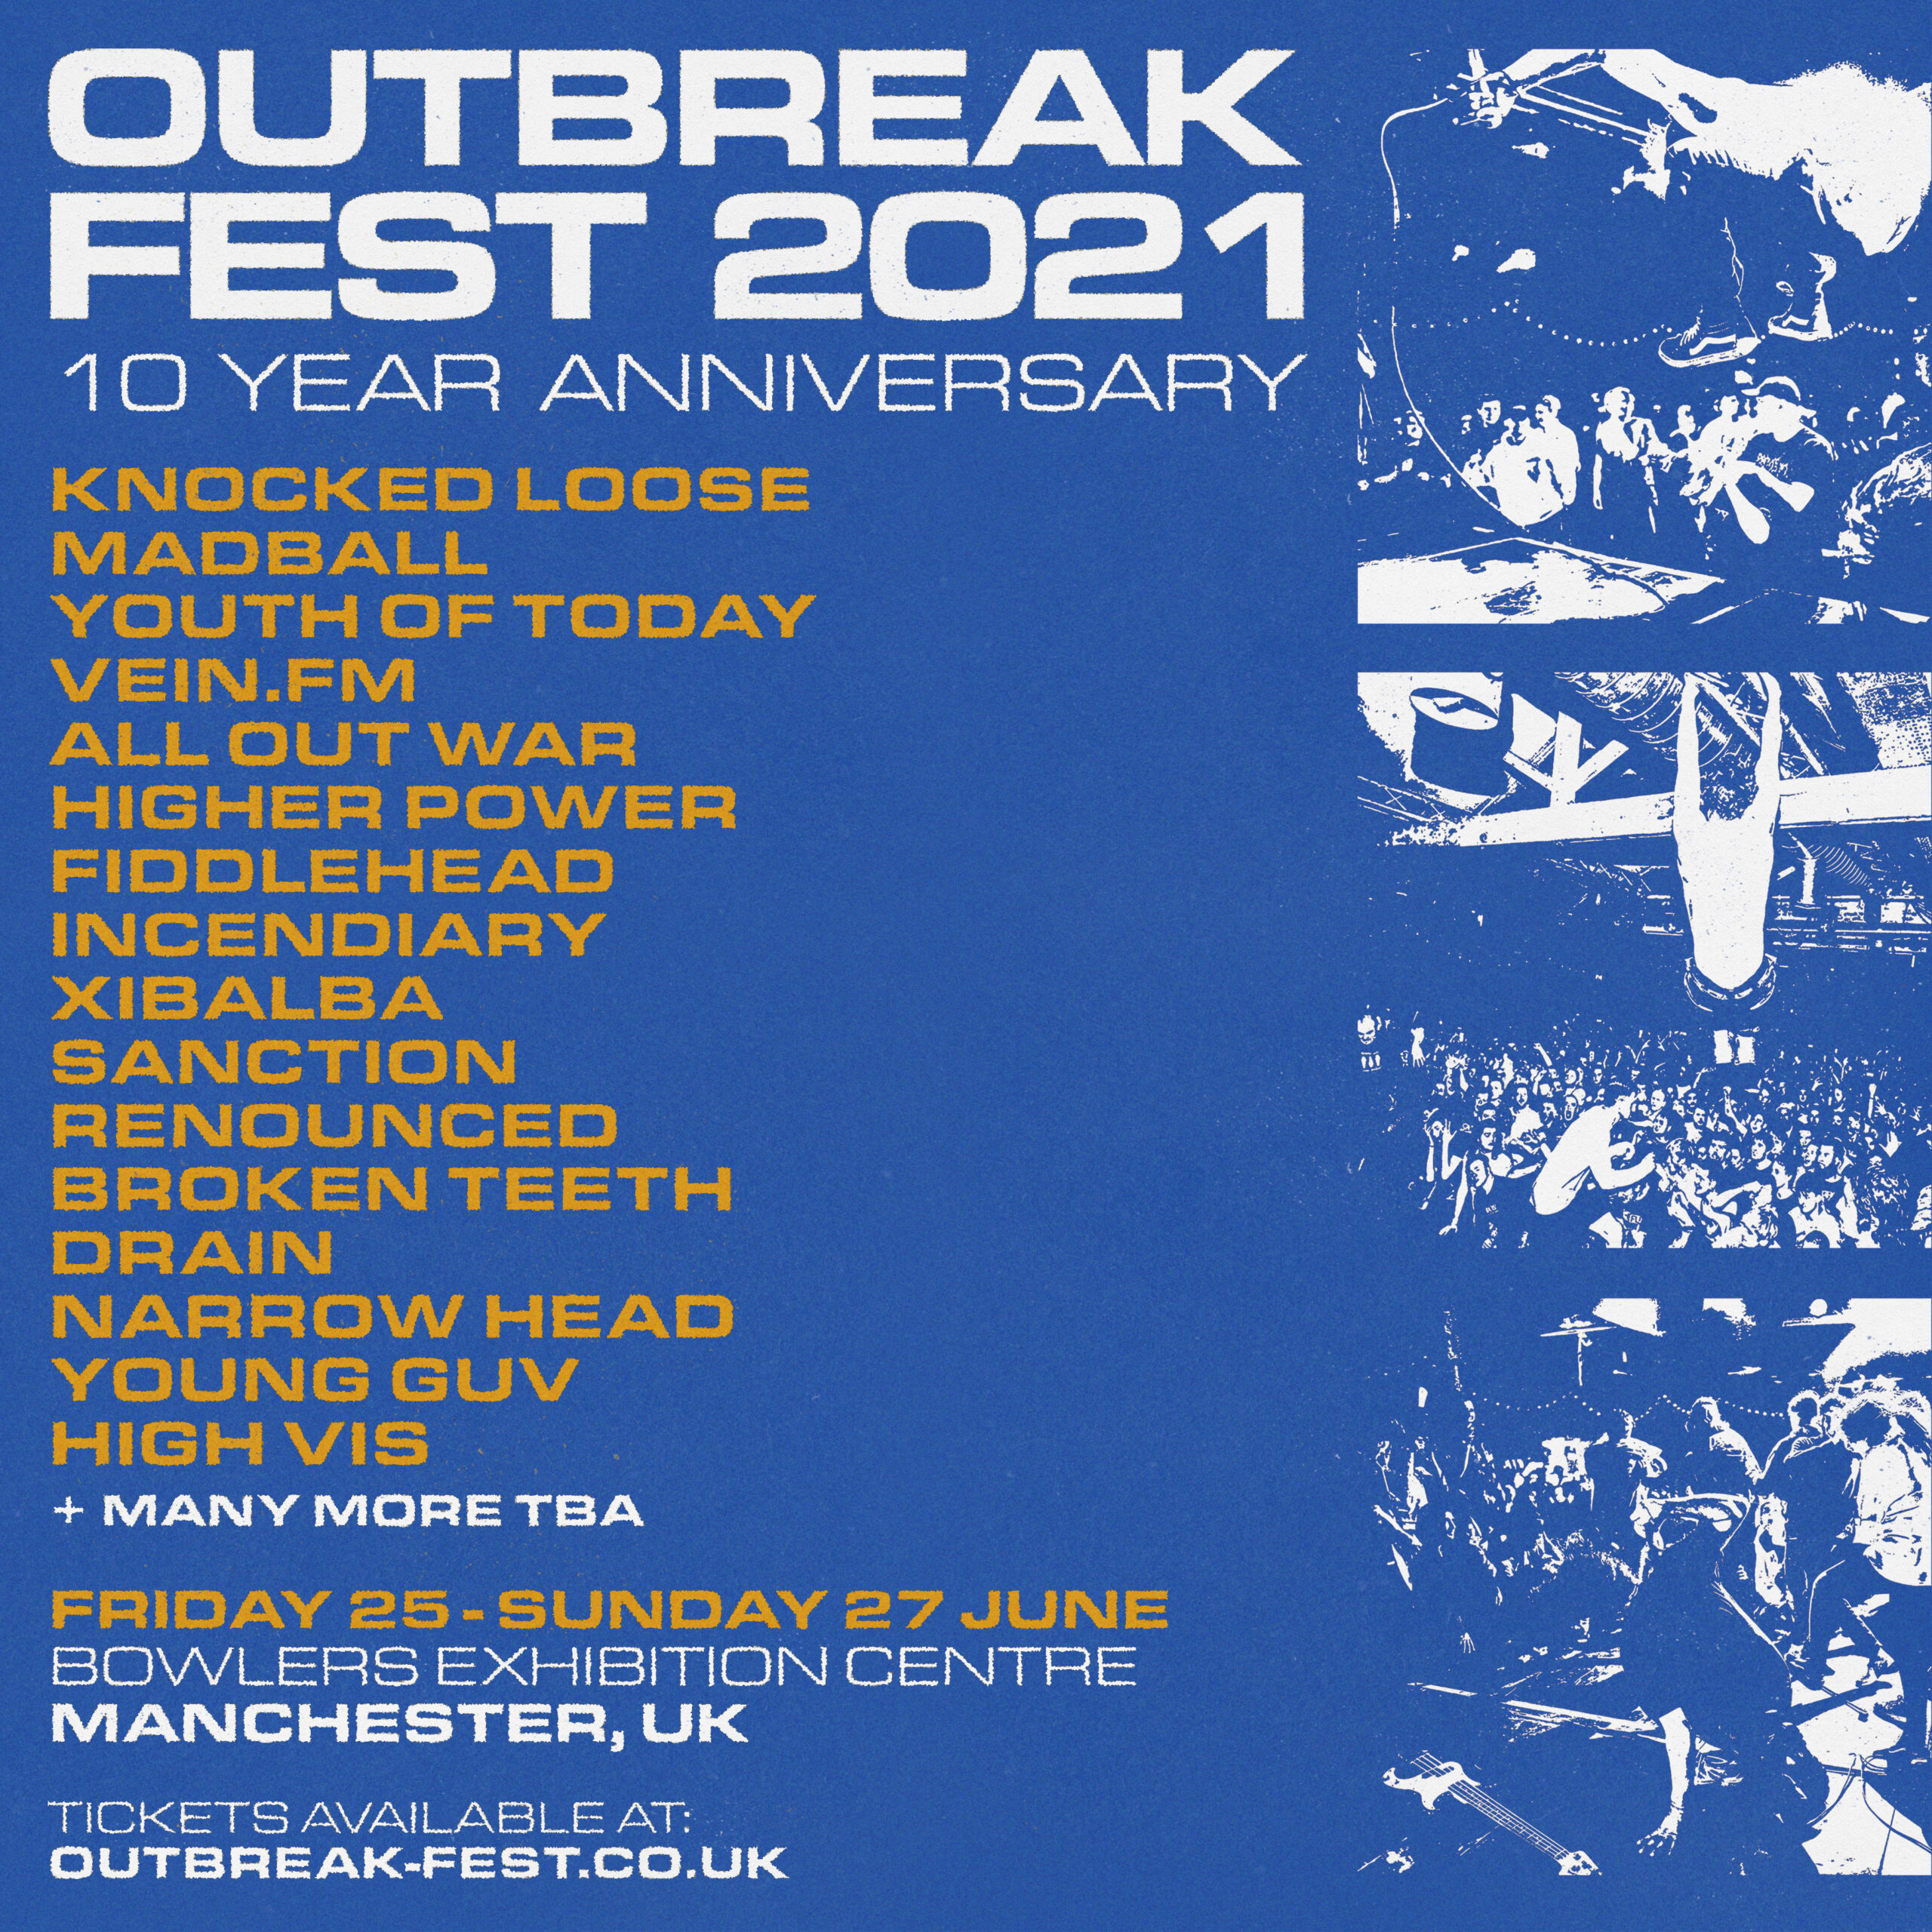 OUTBREAK FEST – 10 YEAR ANNIVERSARY